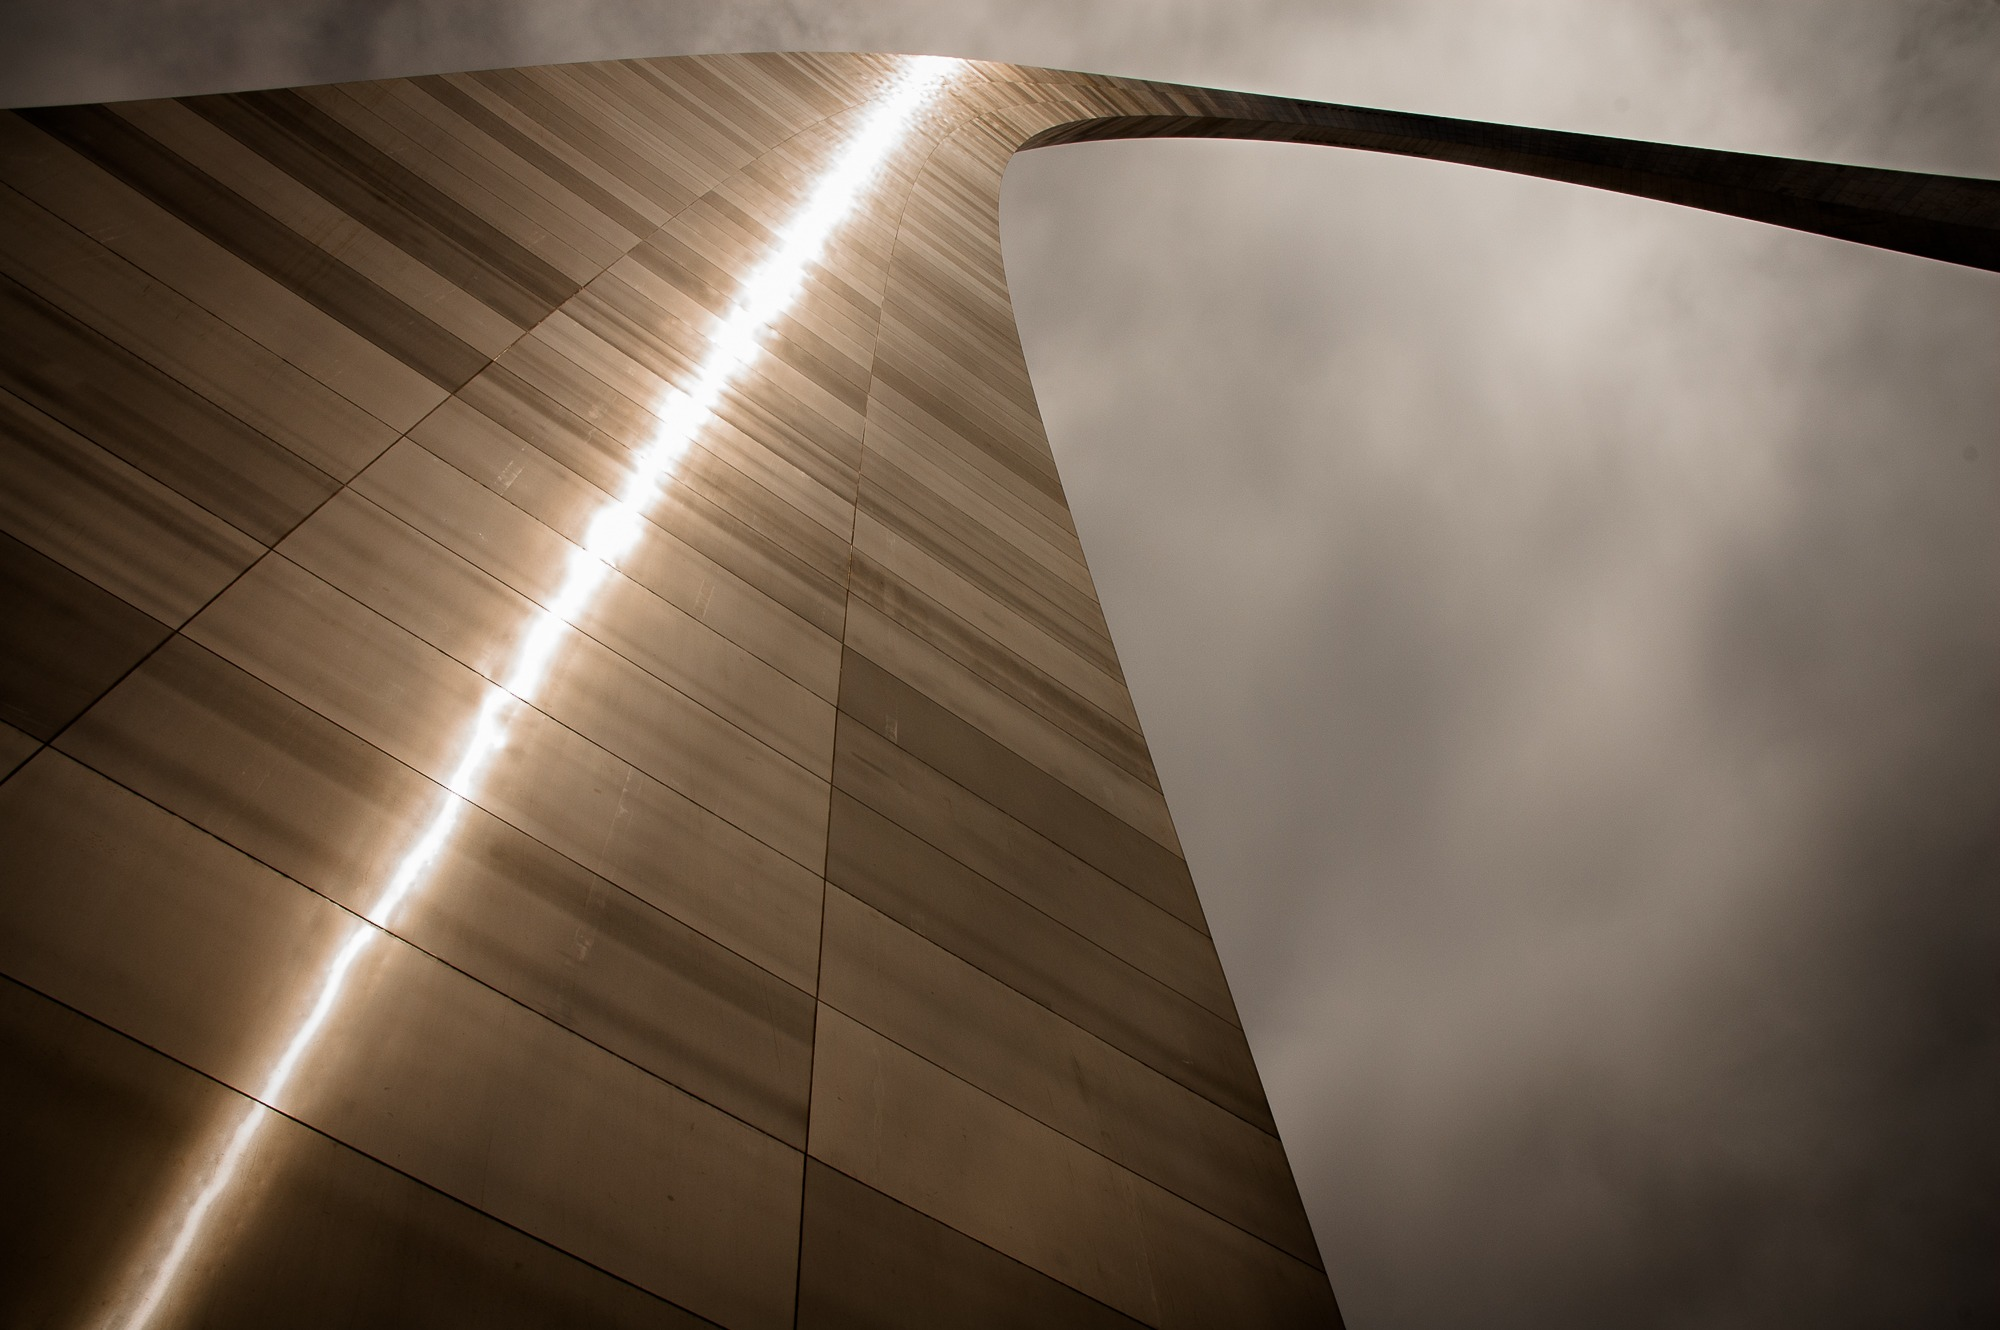 st louis arch missouri